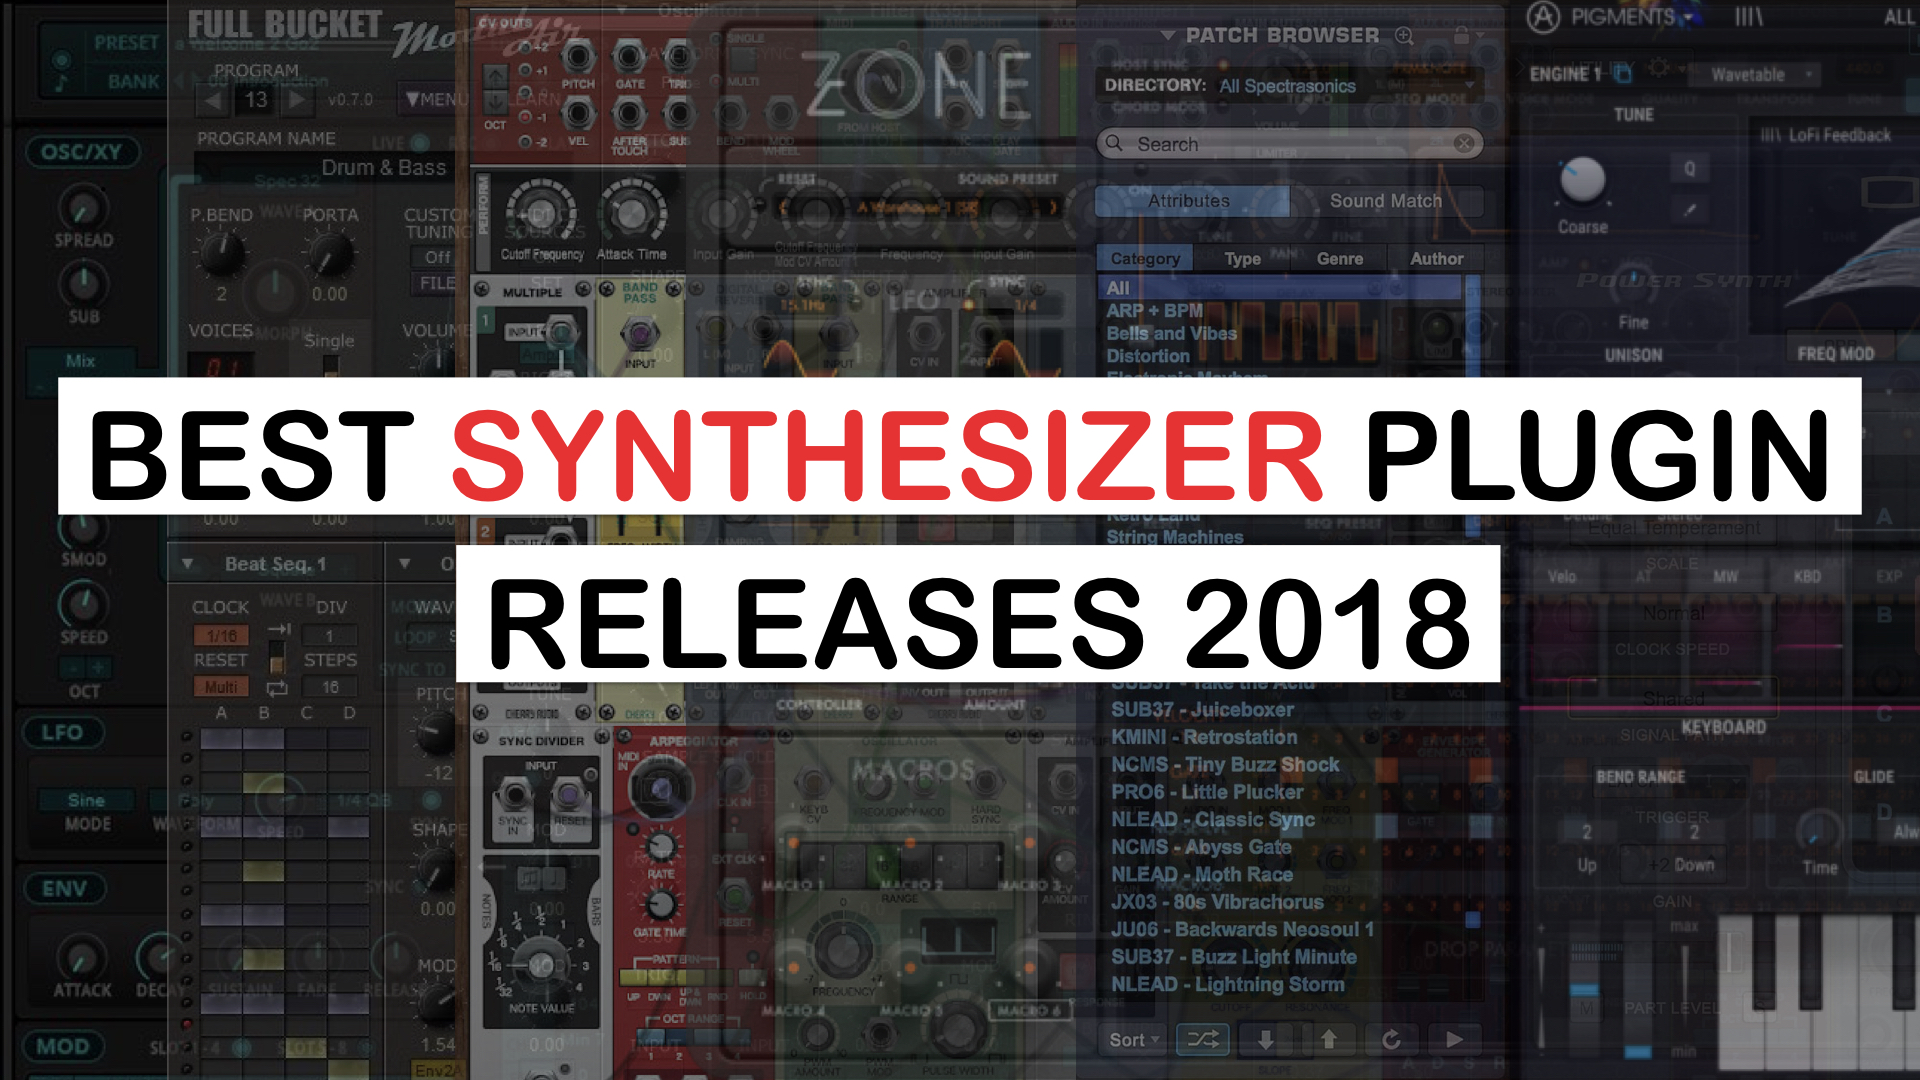 News: Best Synthesizer Plugin Releases In 2018 - SYNTH ANATOMY